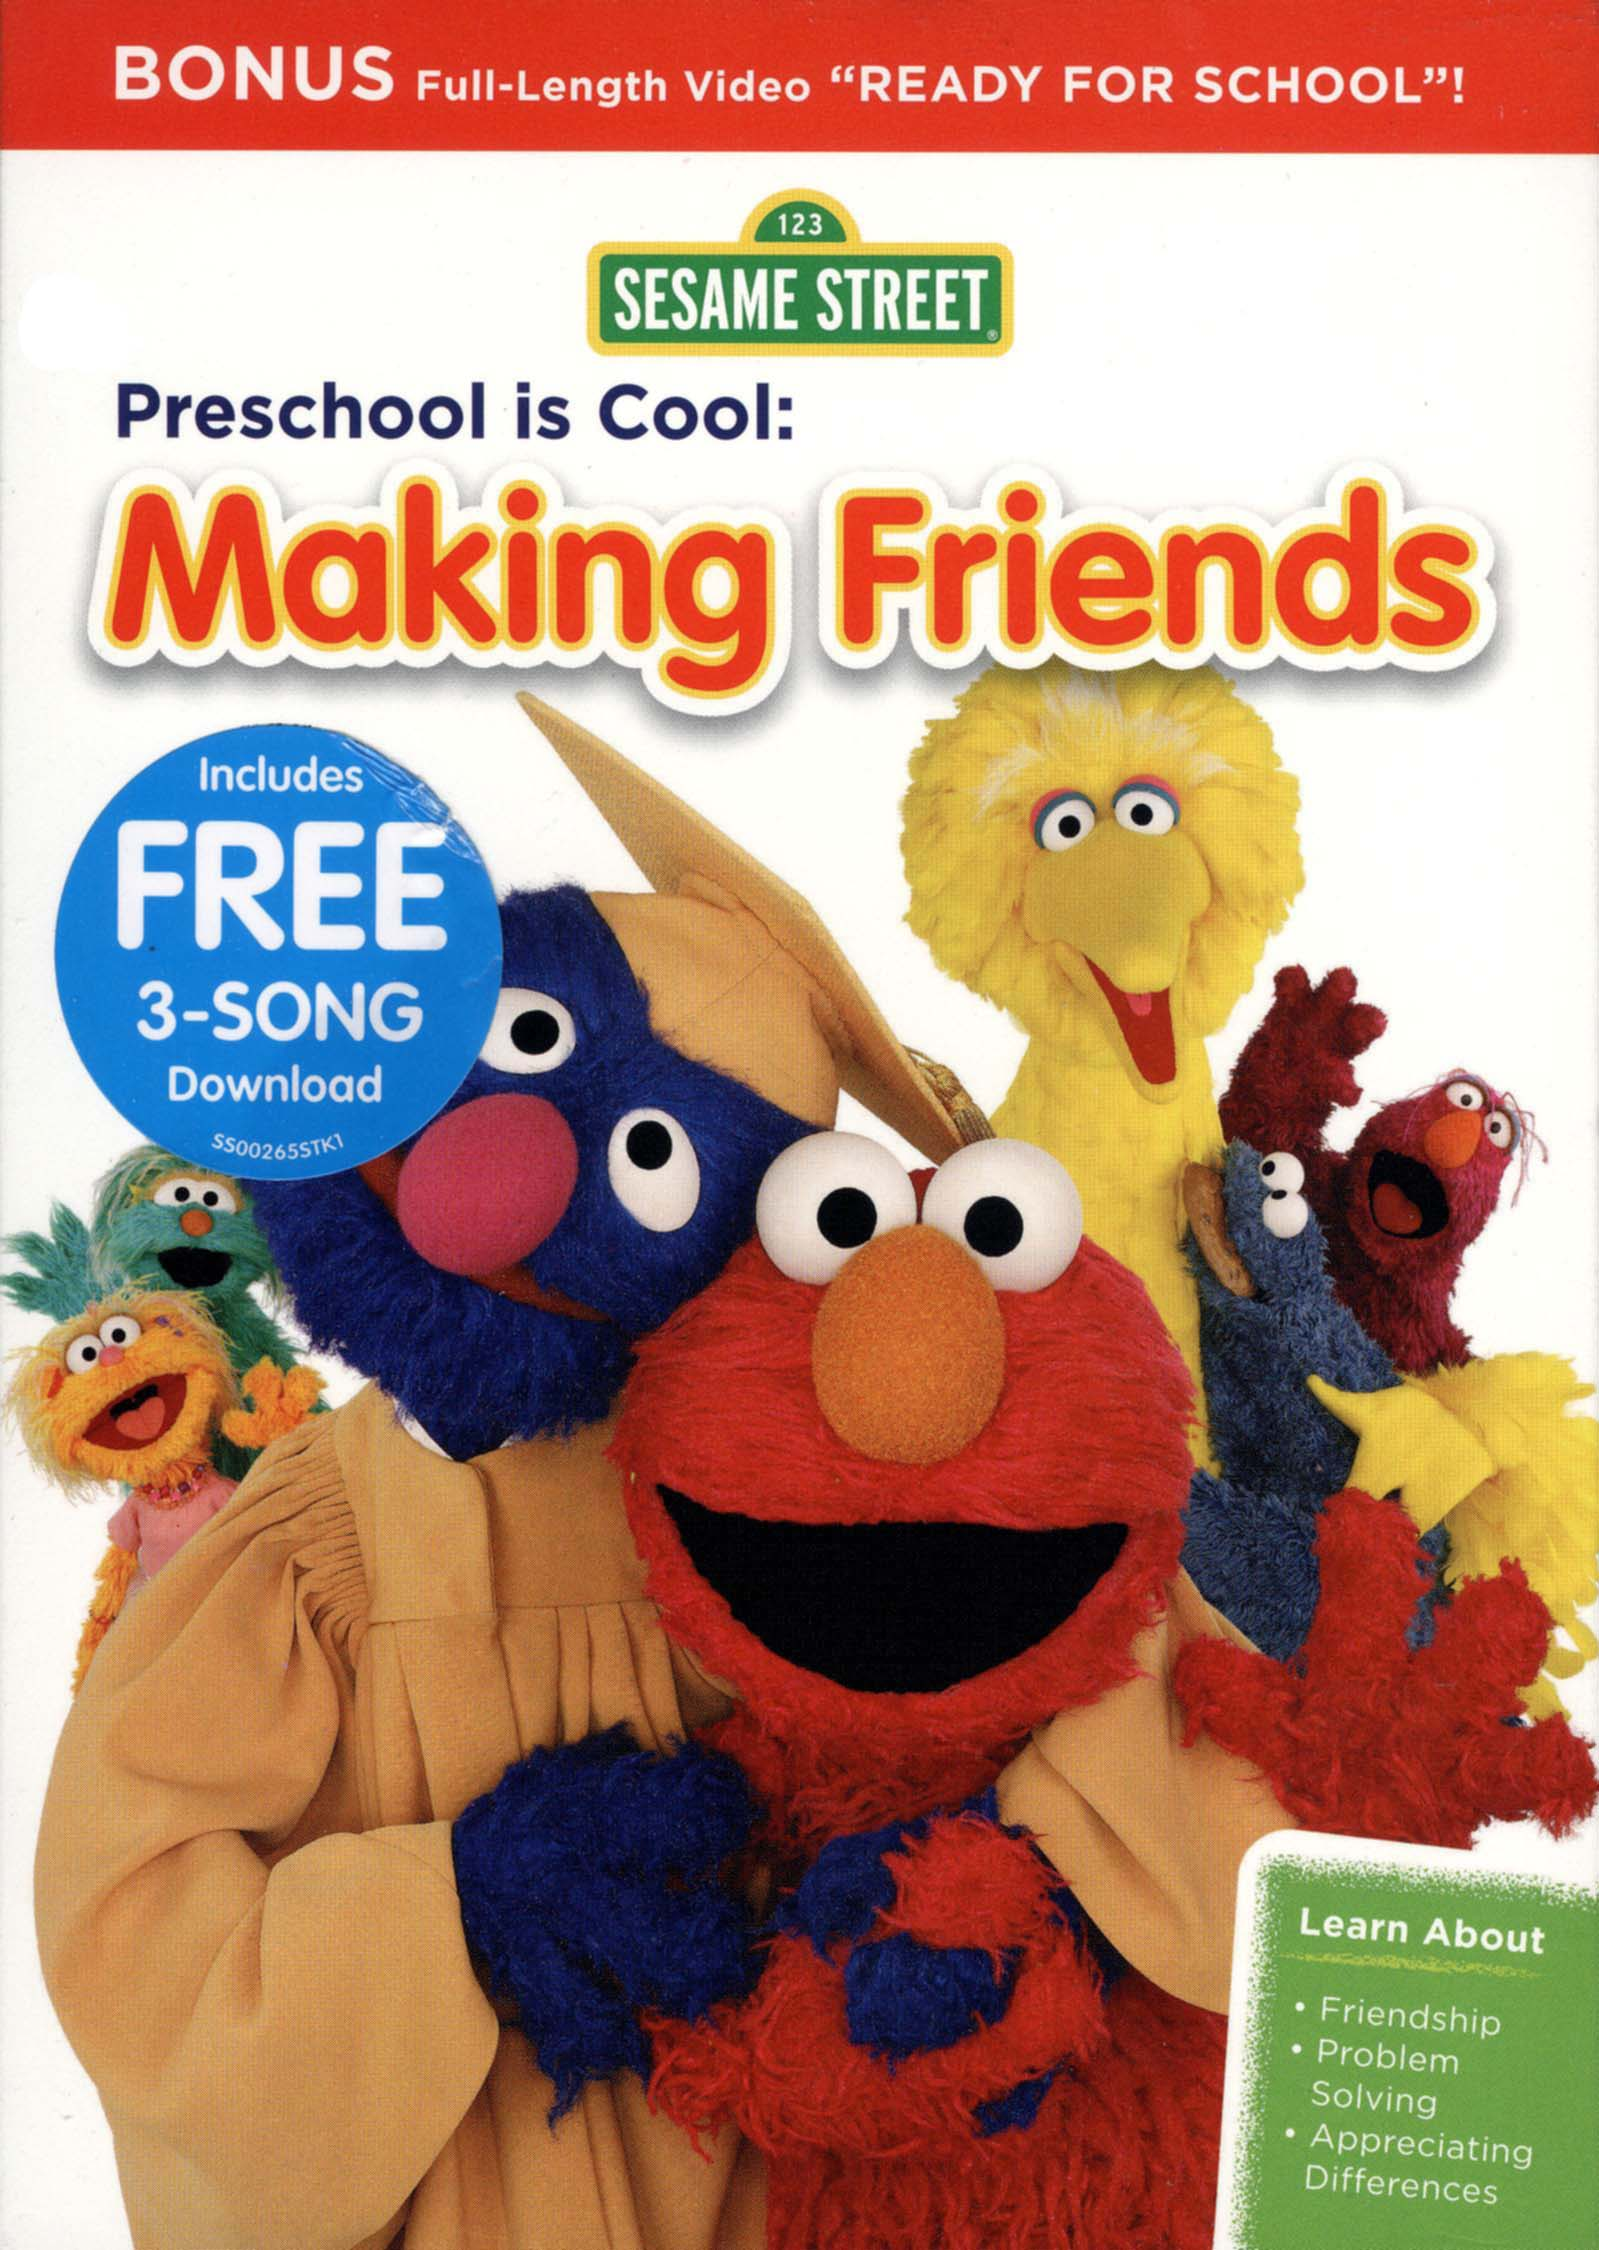 Sesame Street: Preschool Is Cool! - Making Friends